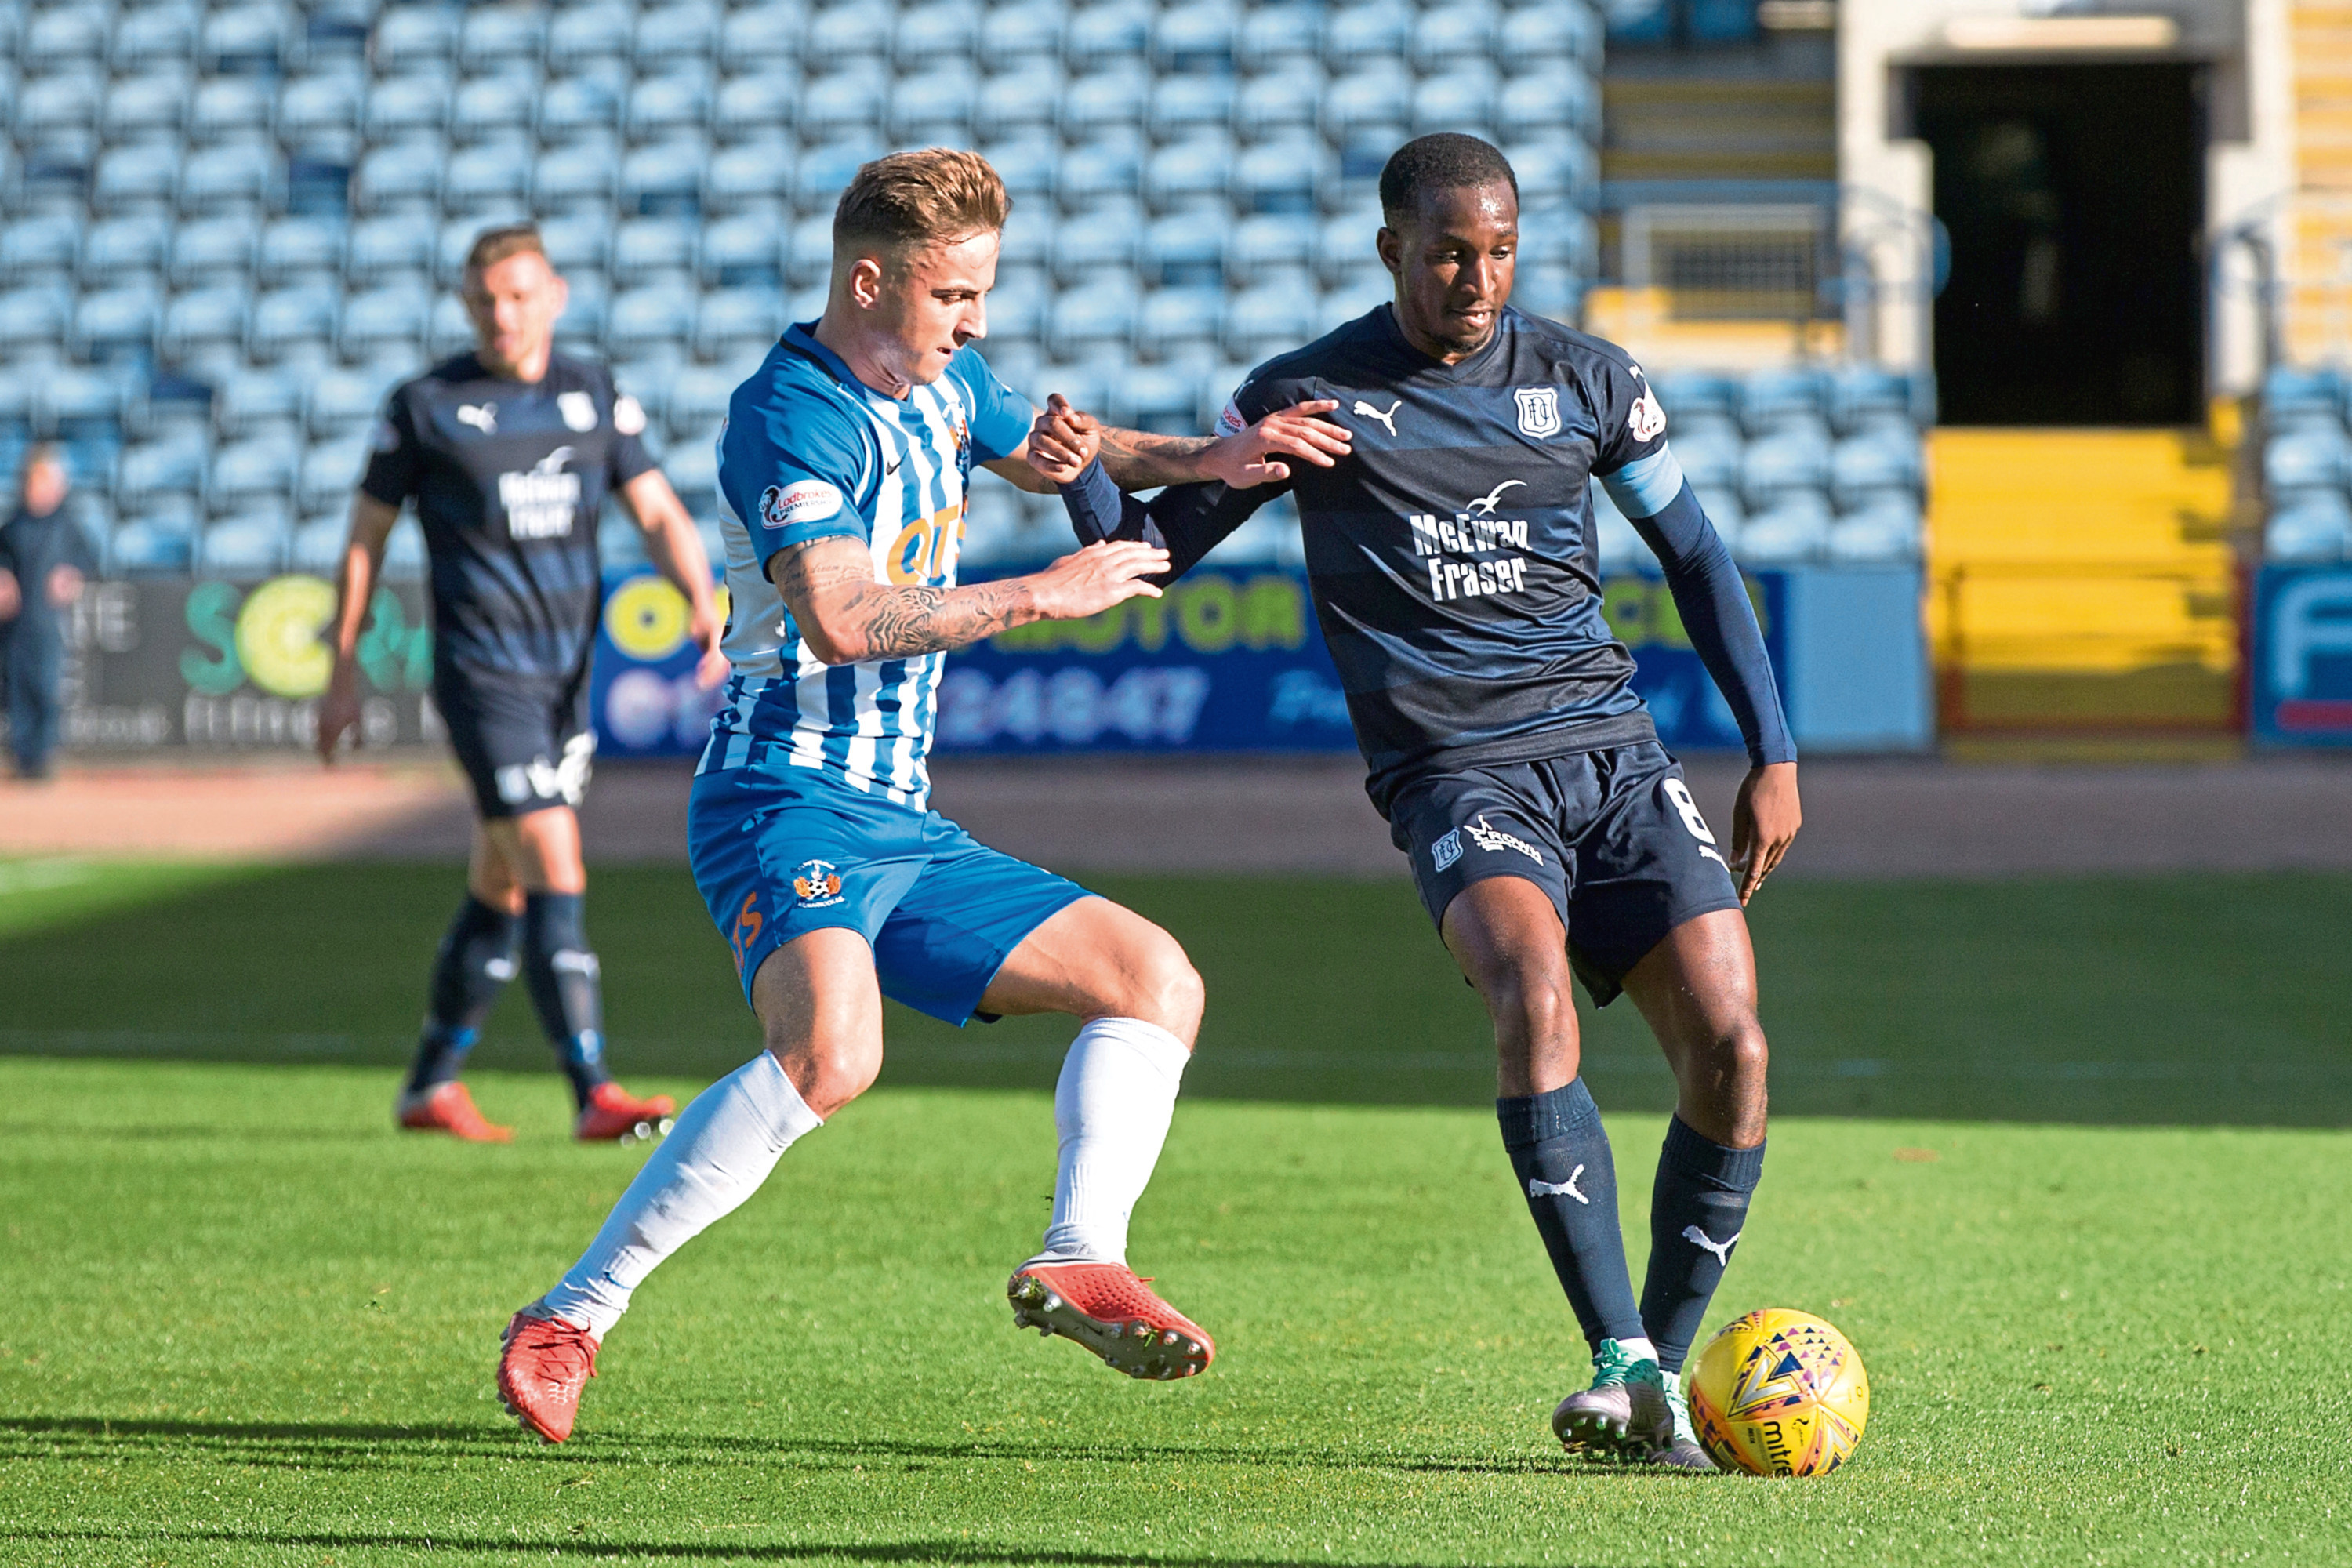 Dundee's Glen Kamara challenges for the ball with Eamonn Brophy of Kilmarnock